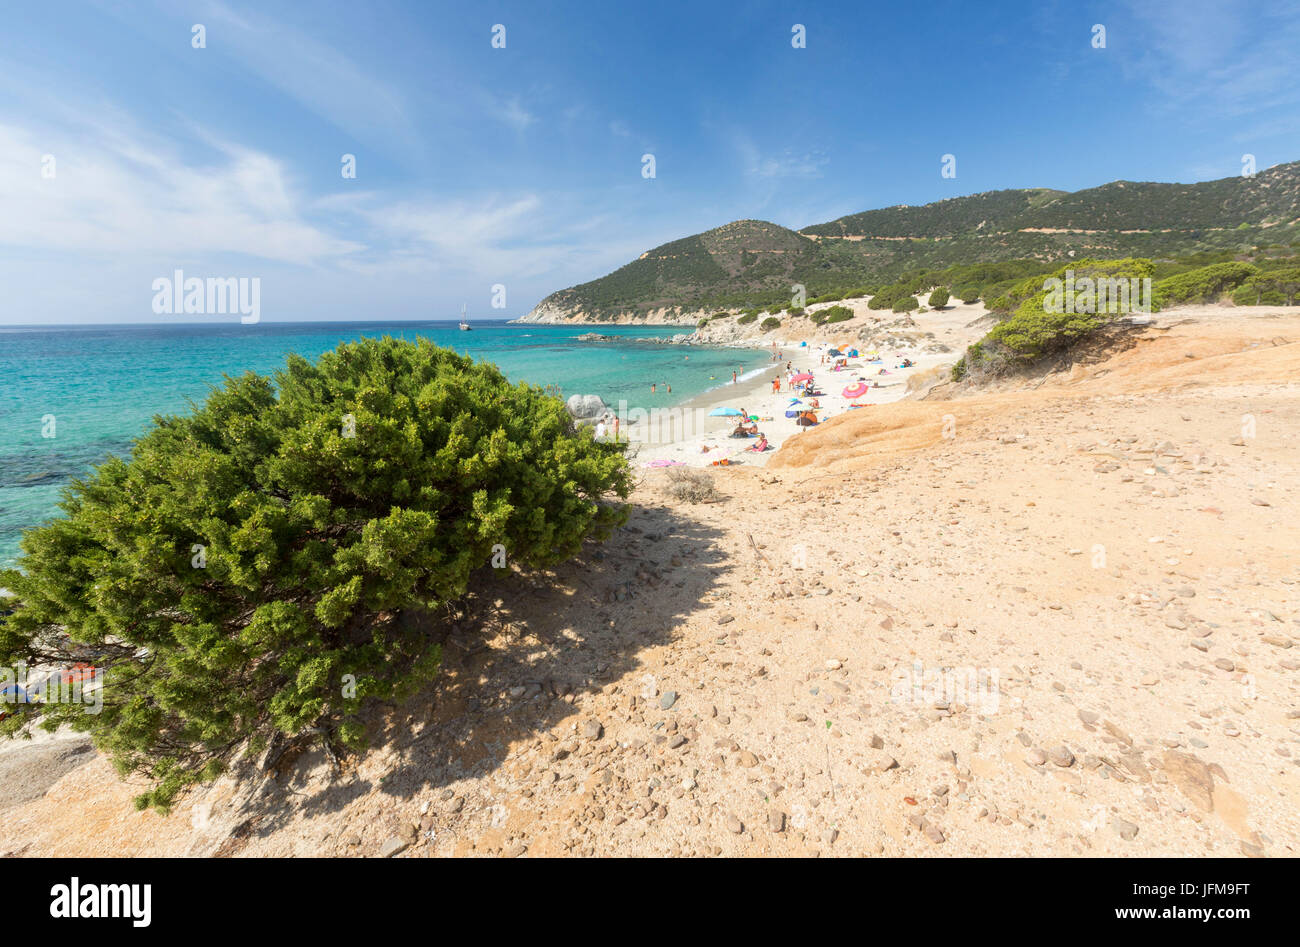 The mediterranean vegetation frames the beach and the turquoise sea ...